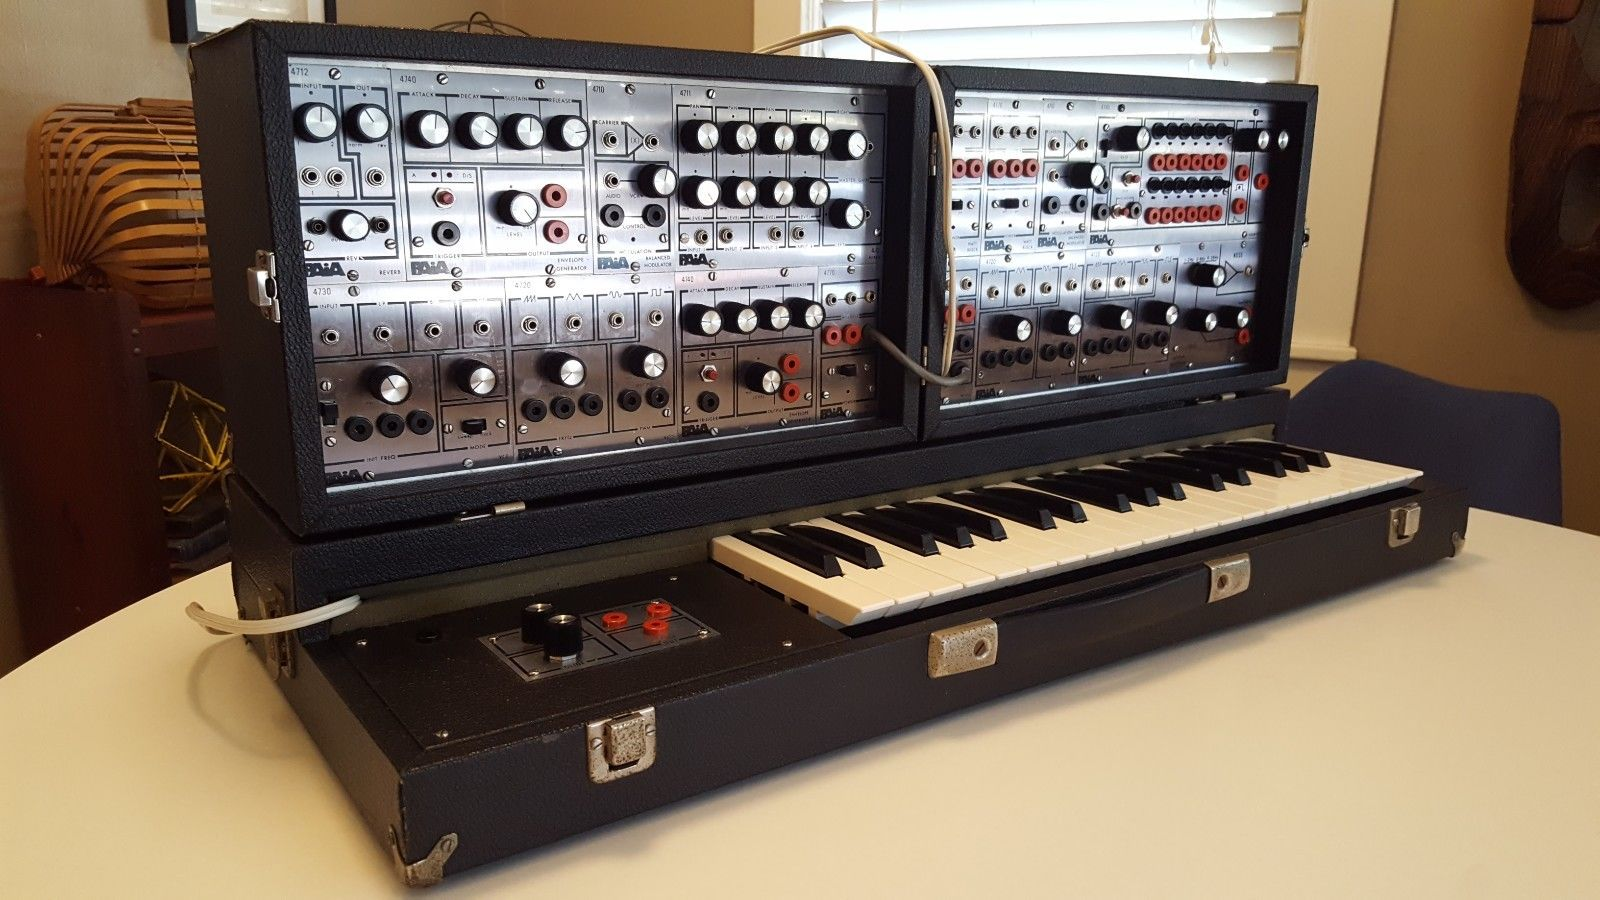 matrixsynth vintage paia 4700 modular synthesizer system with keyboard. Black Bedroom Furniture Sets. Home Design Ideas